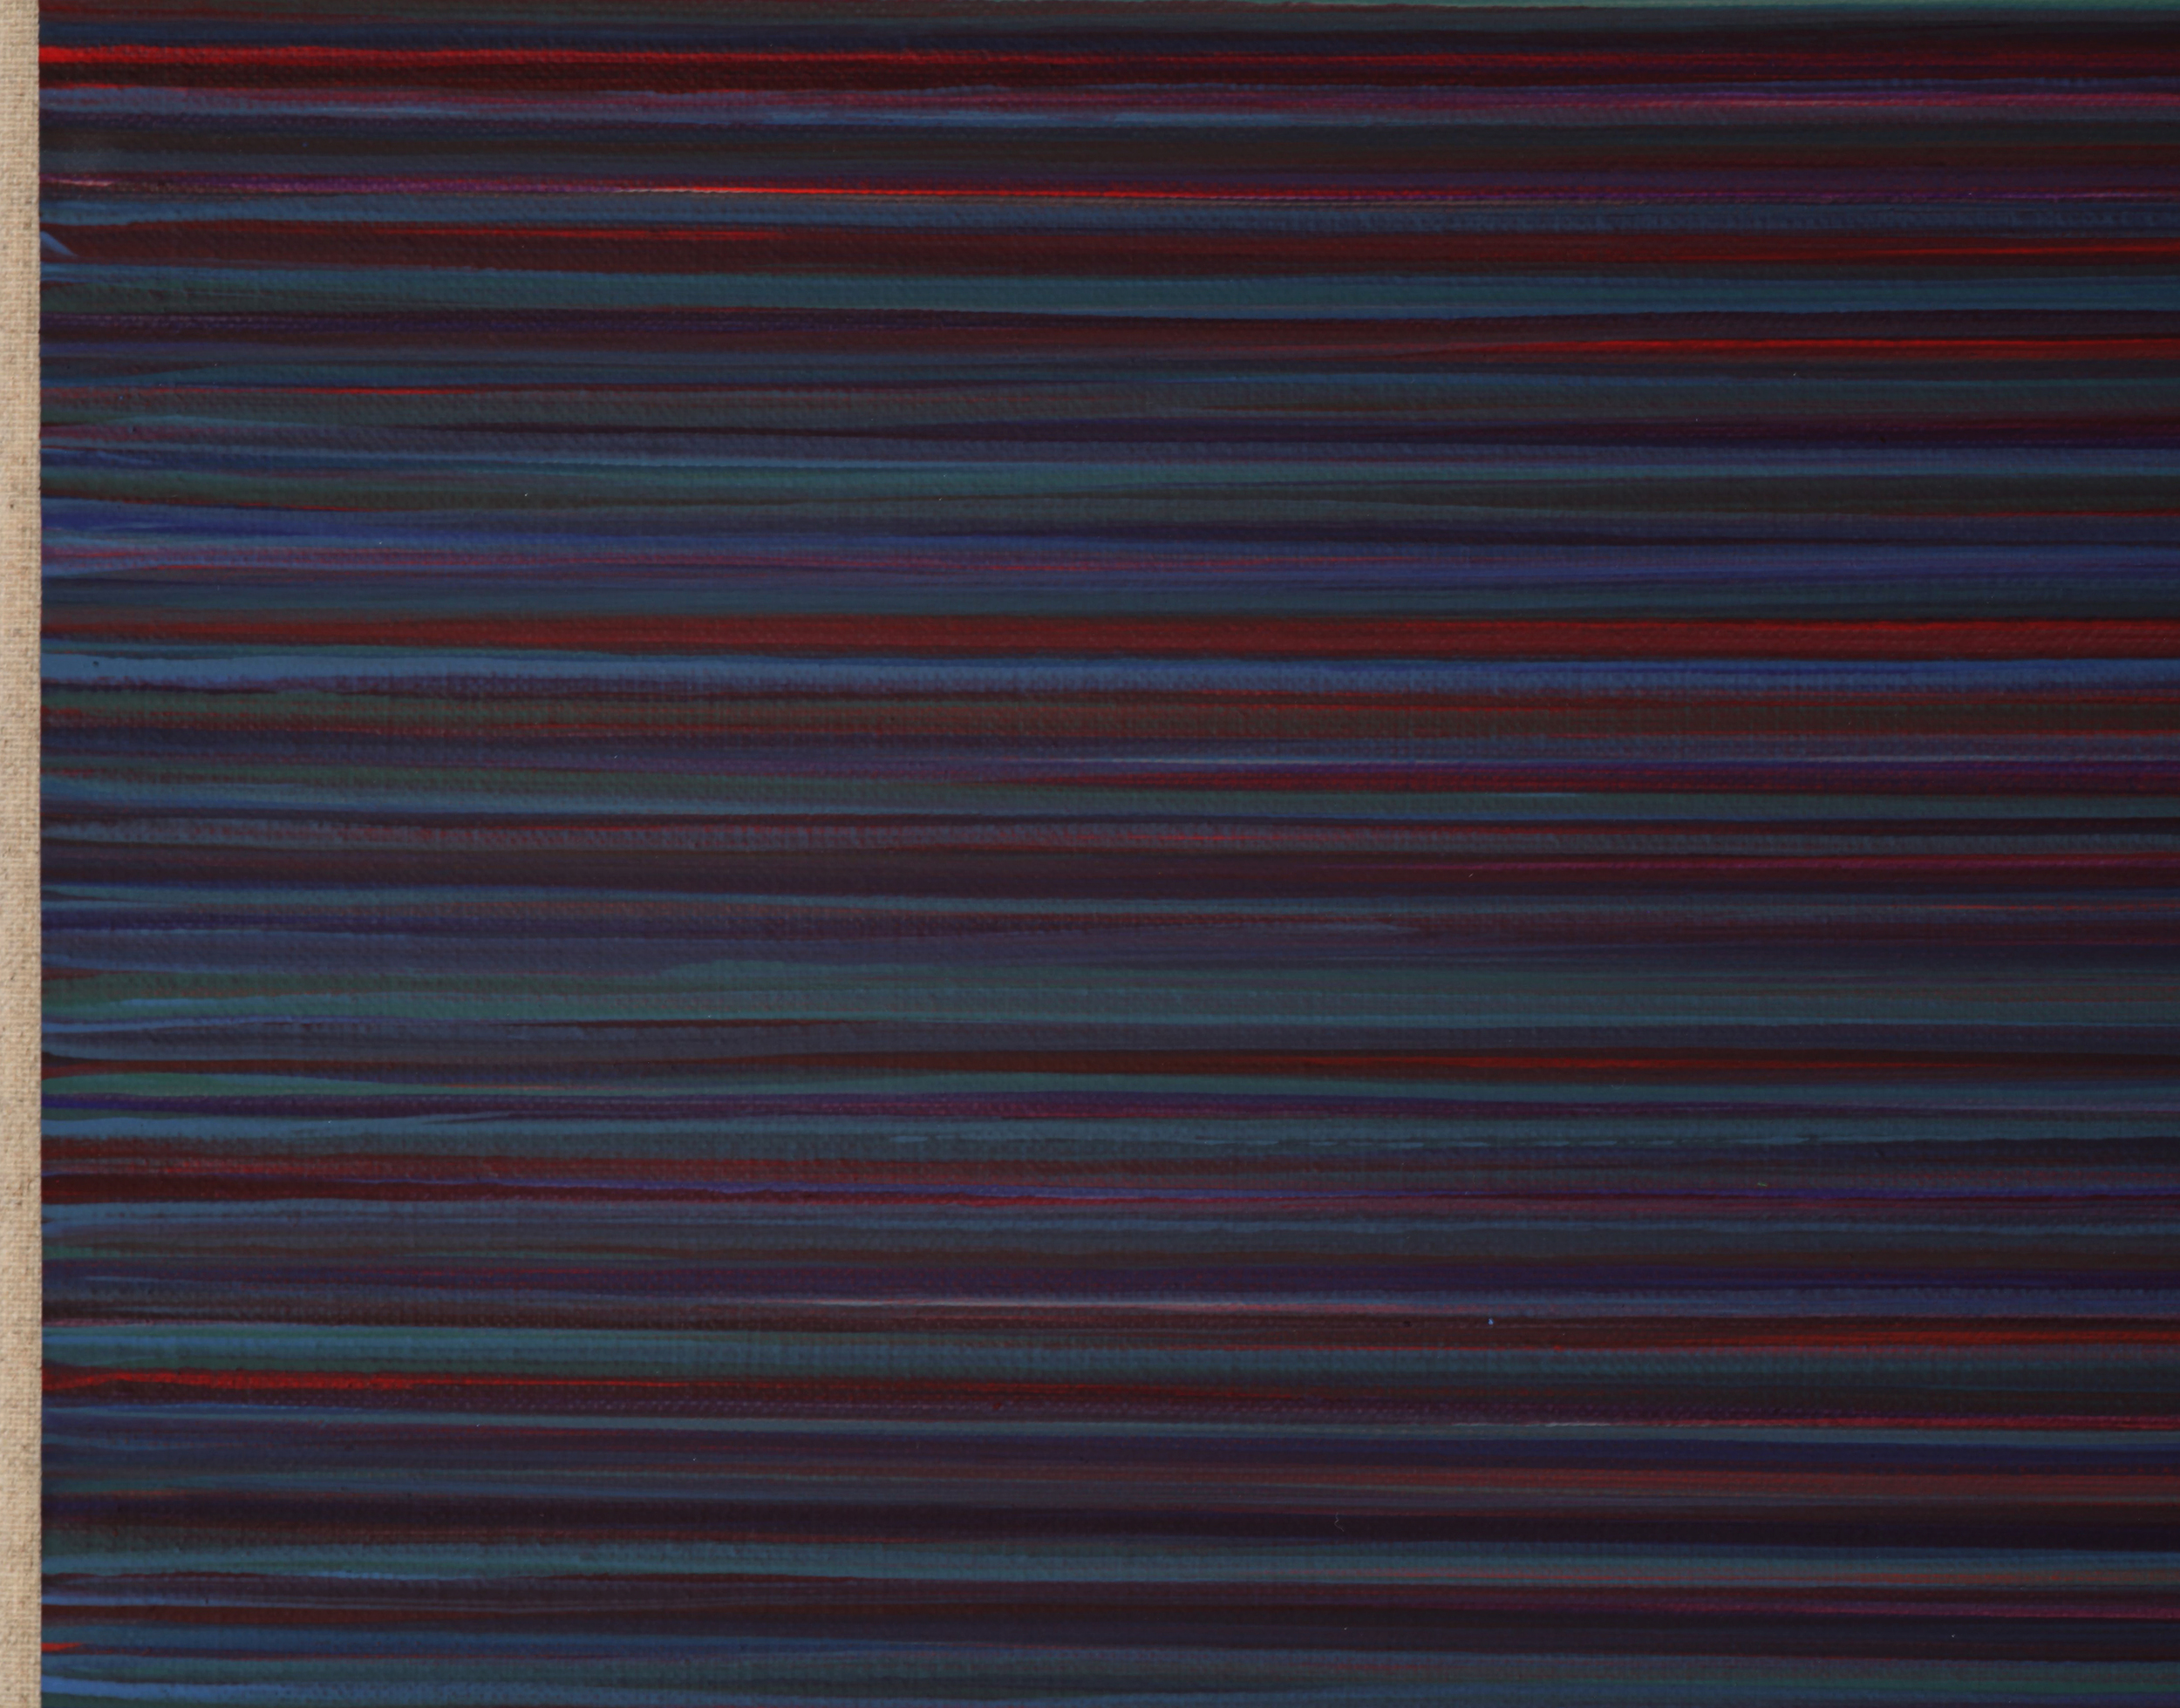 Untilted, (Detail), 2014, 150x150 cm, 59.05x59.05 in